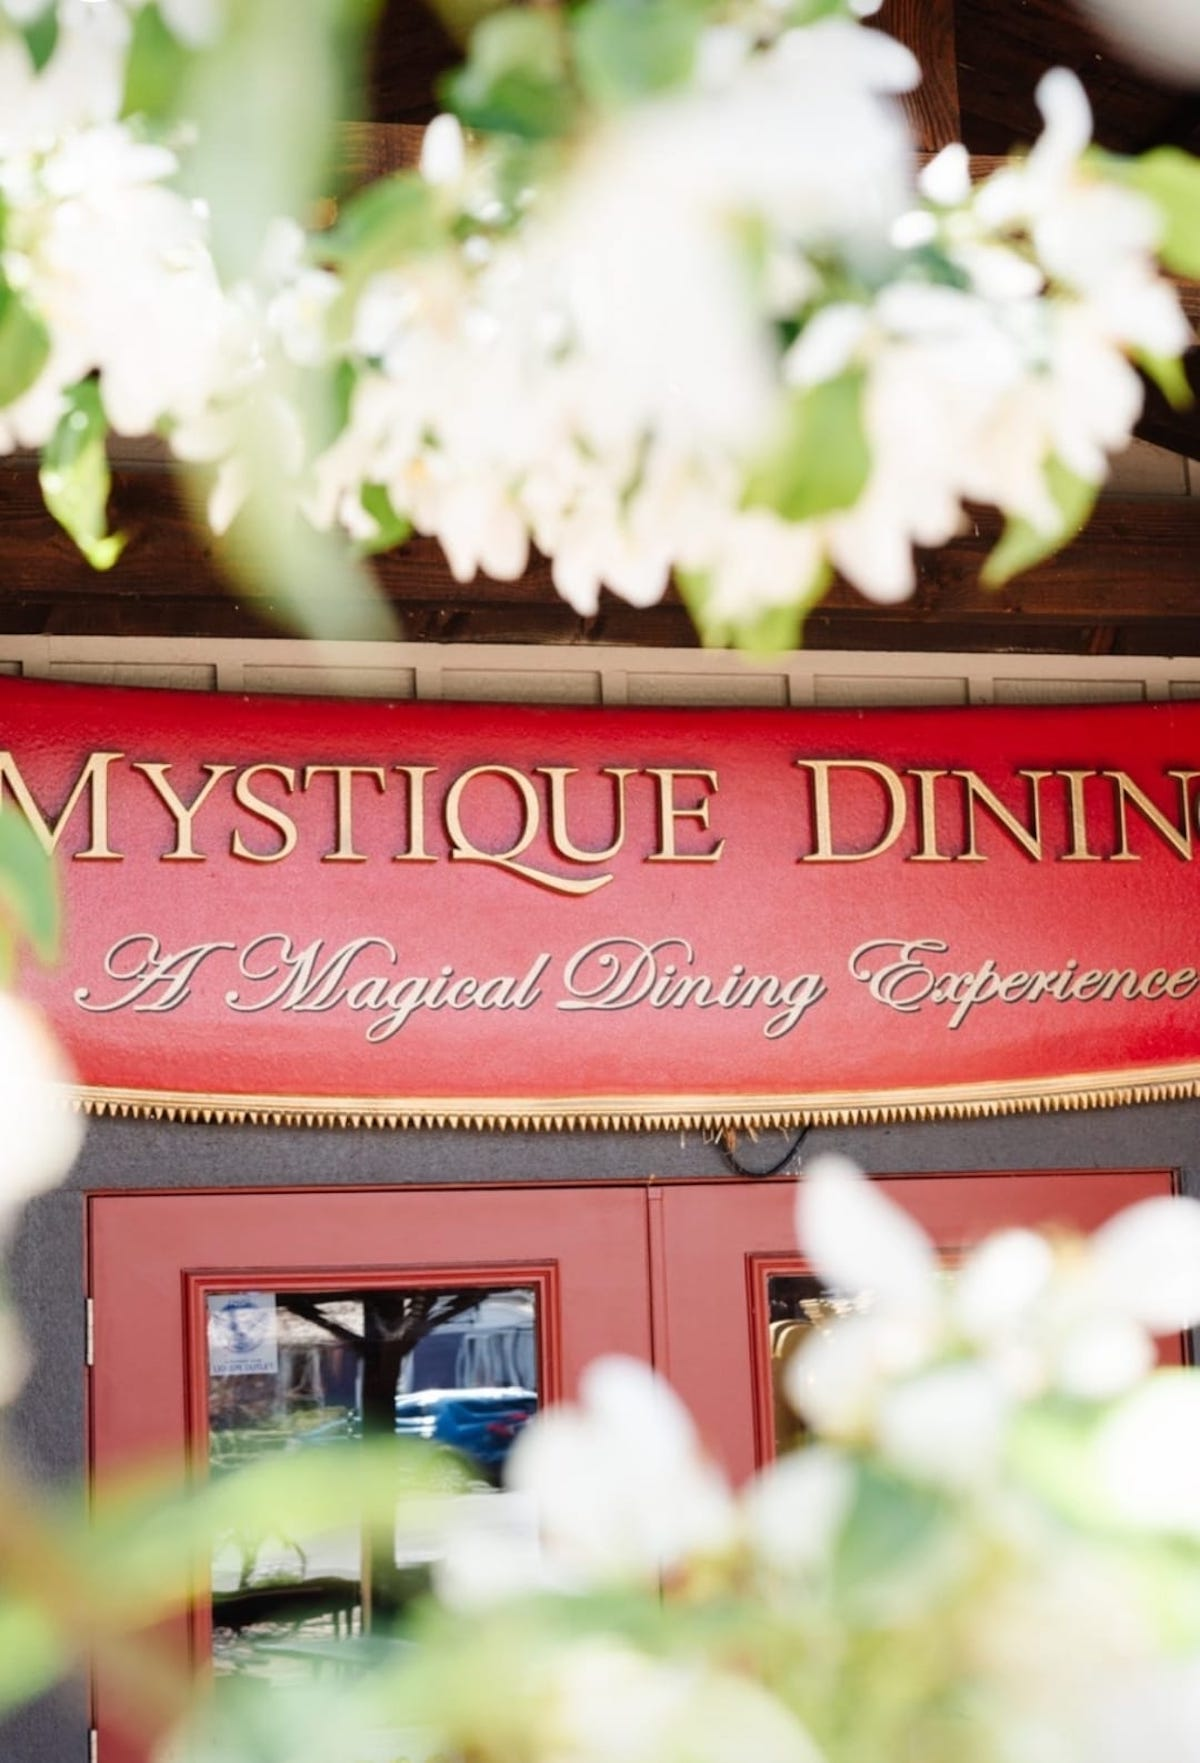 Magical Experience, Mystique Dining, Soon to Appear in La Jolla, California